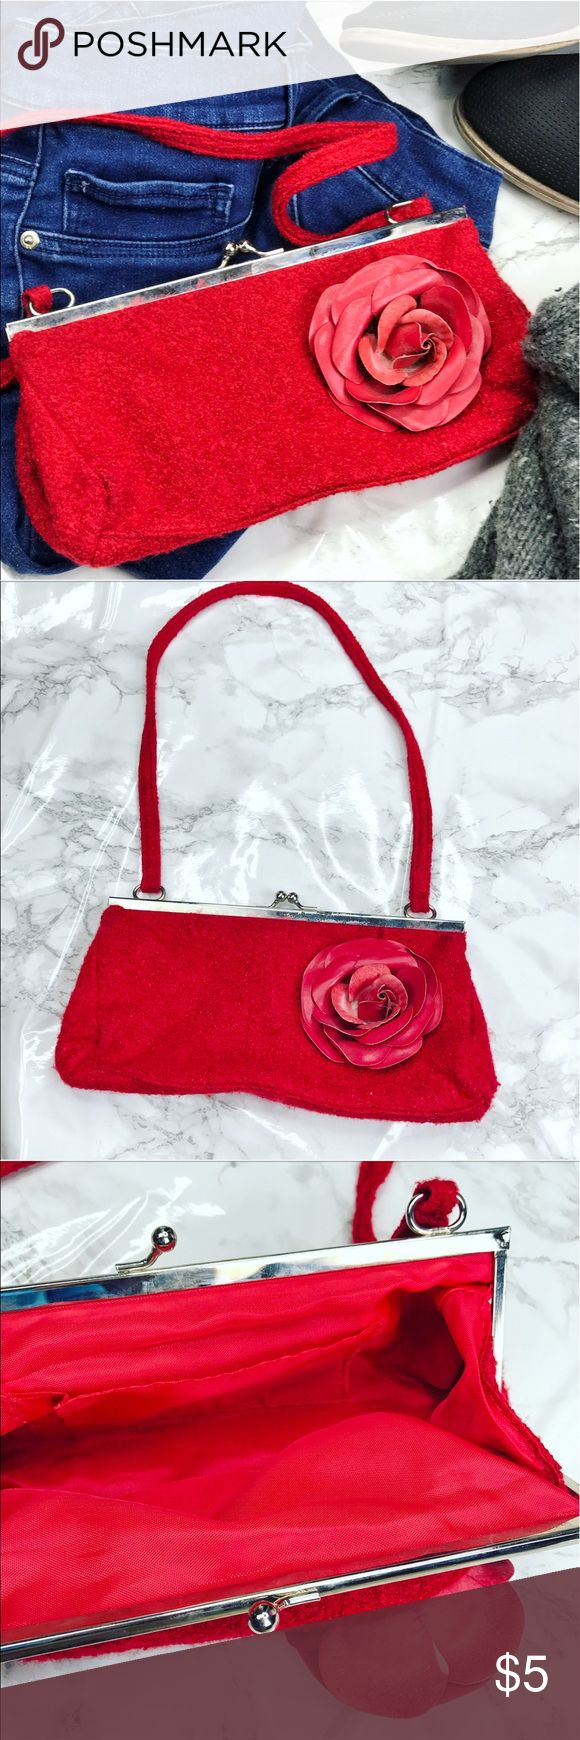 🌹Red Clutch Bag 🌹 Red Clutch/ Handbag With a red rose. One pocket inside. Shell: 100% Polyester; Lining: 100% Nylon. *Price Firm Unless Bundled* Bags Clutches & Wristlets